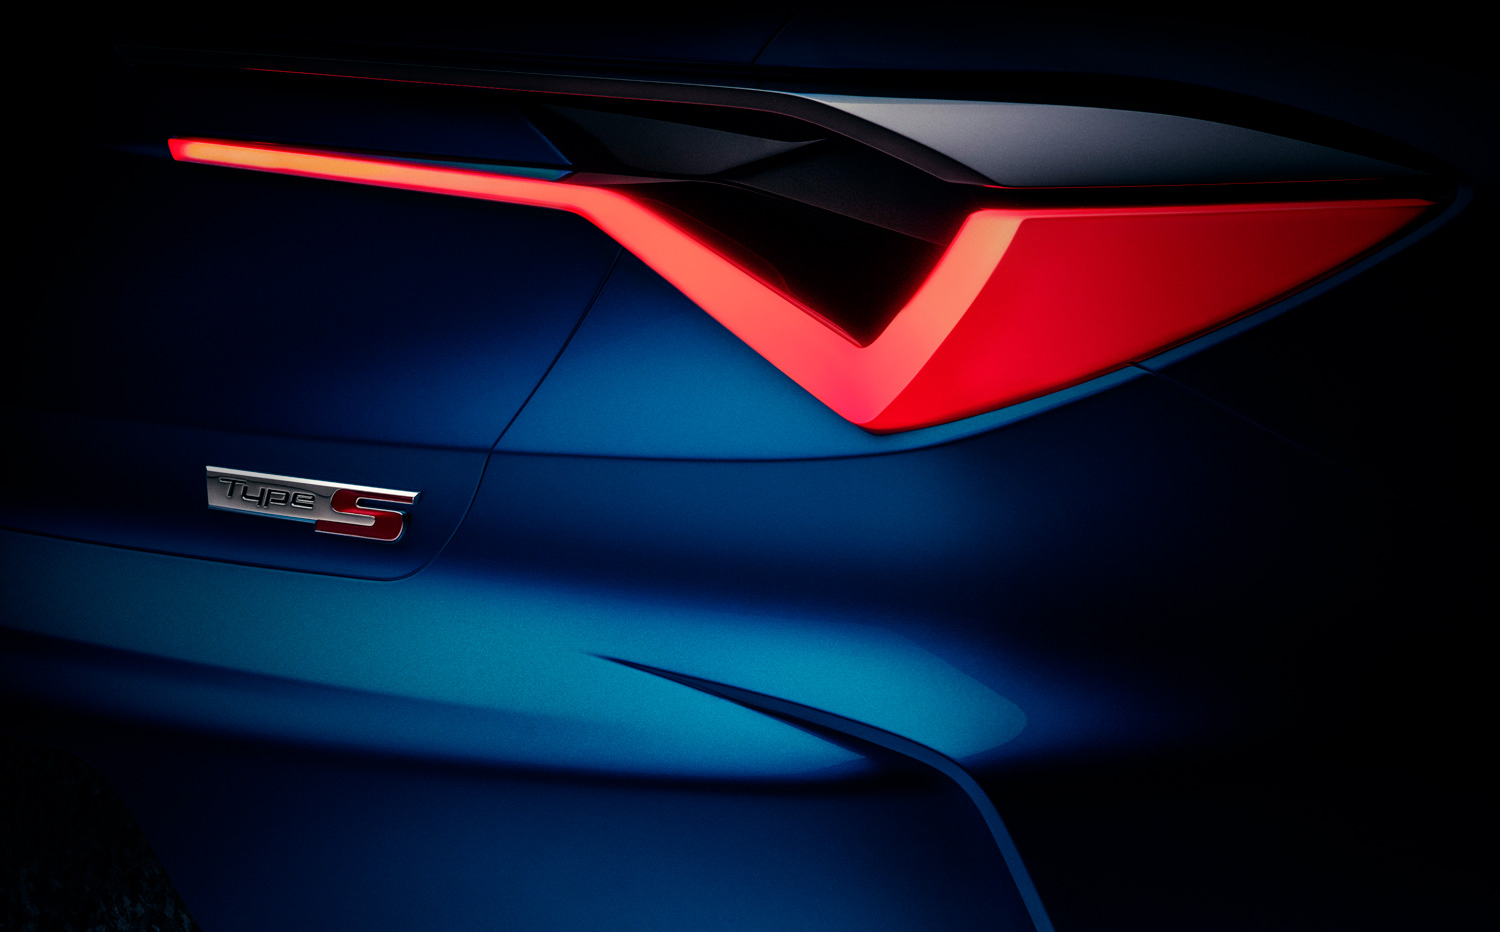 Acura teases the return of the Type S thumbnail